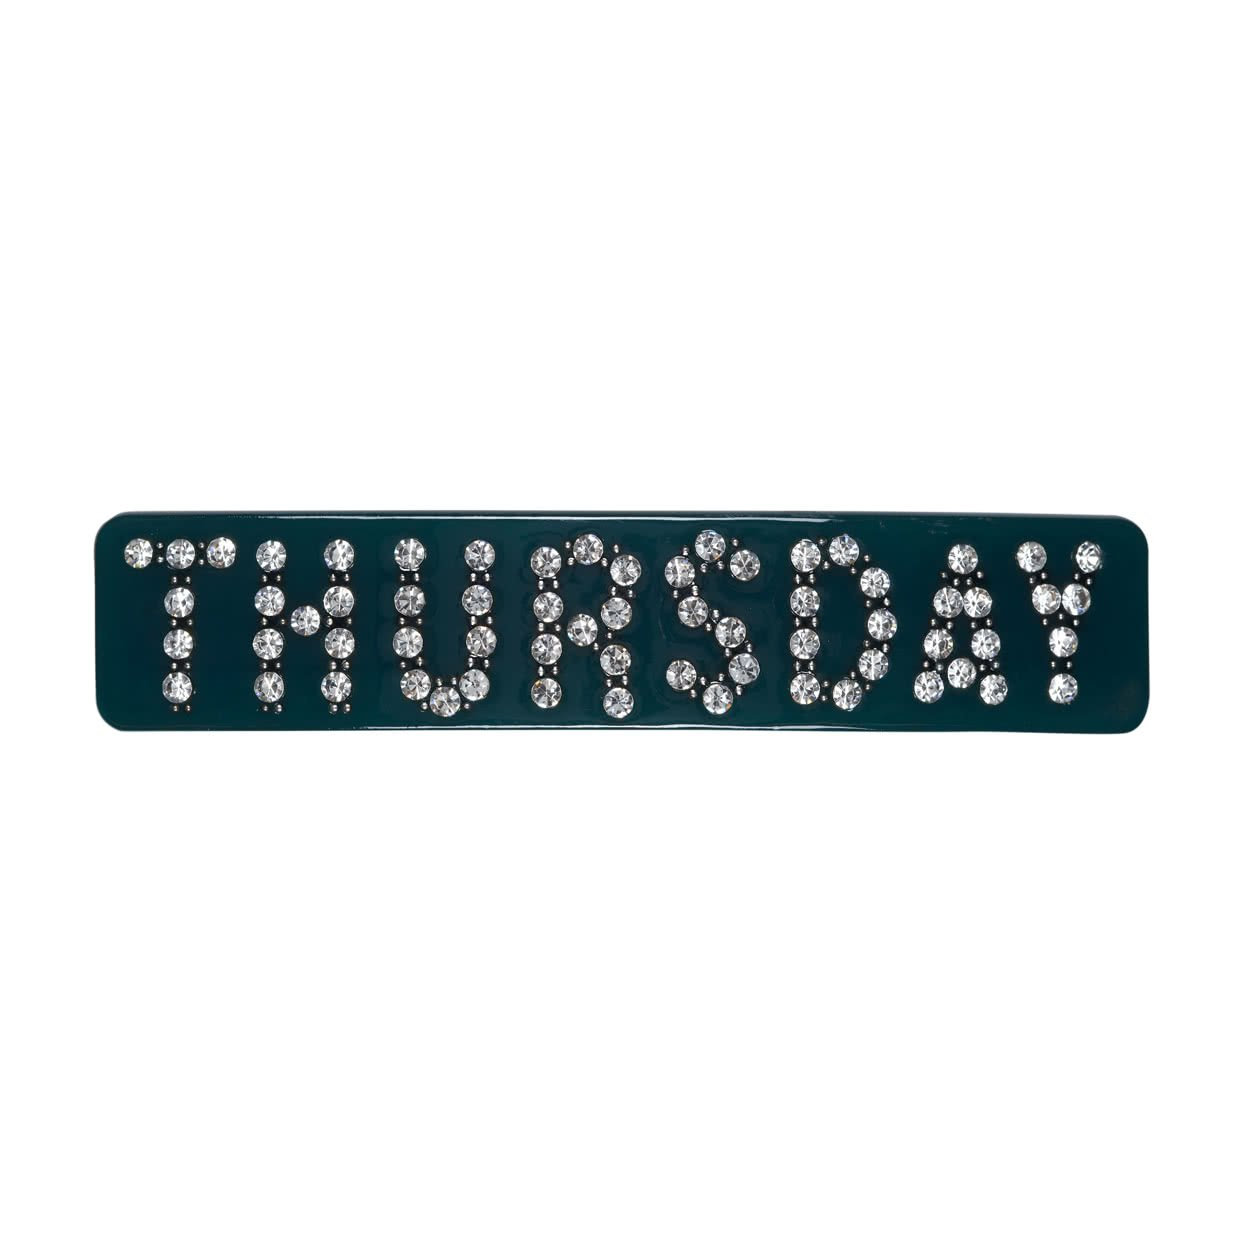 Image of Hair Barrette with crystals - Dark Green / Thursday